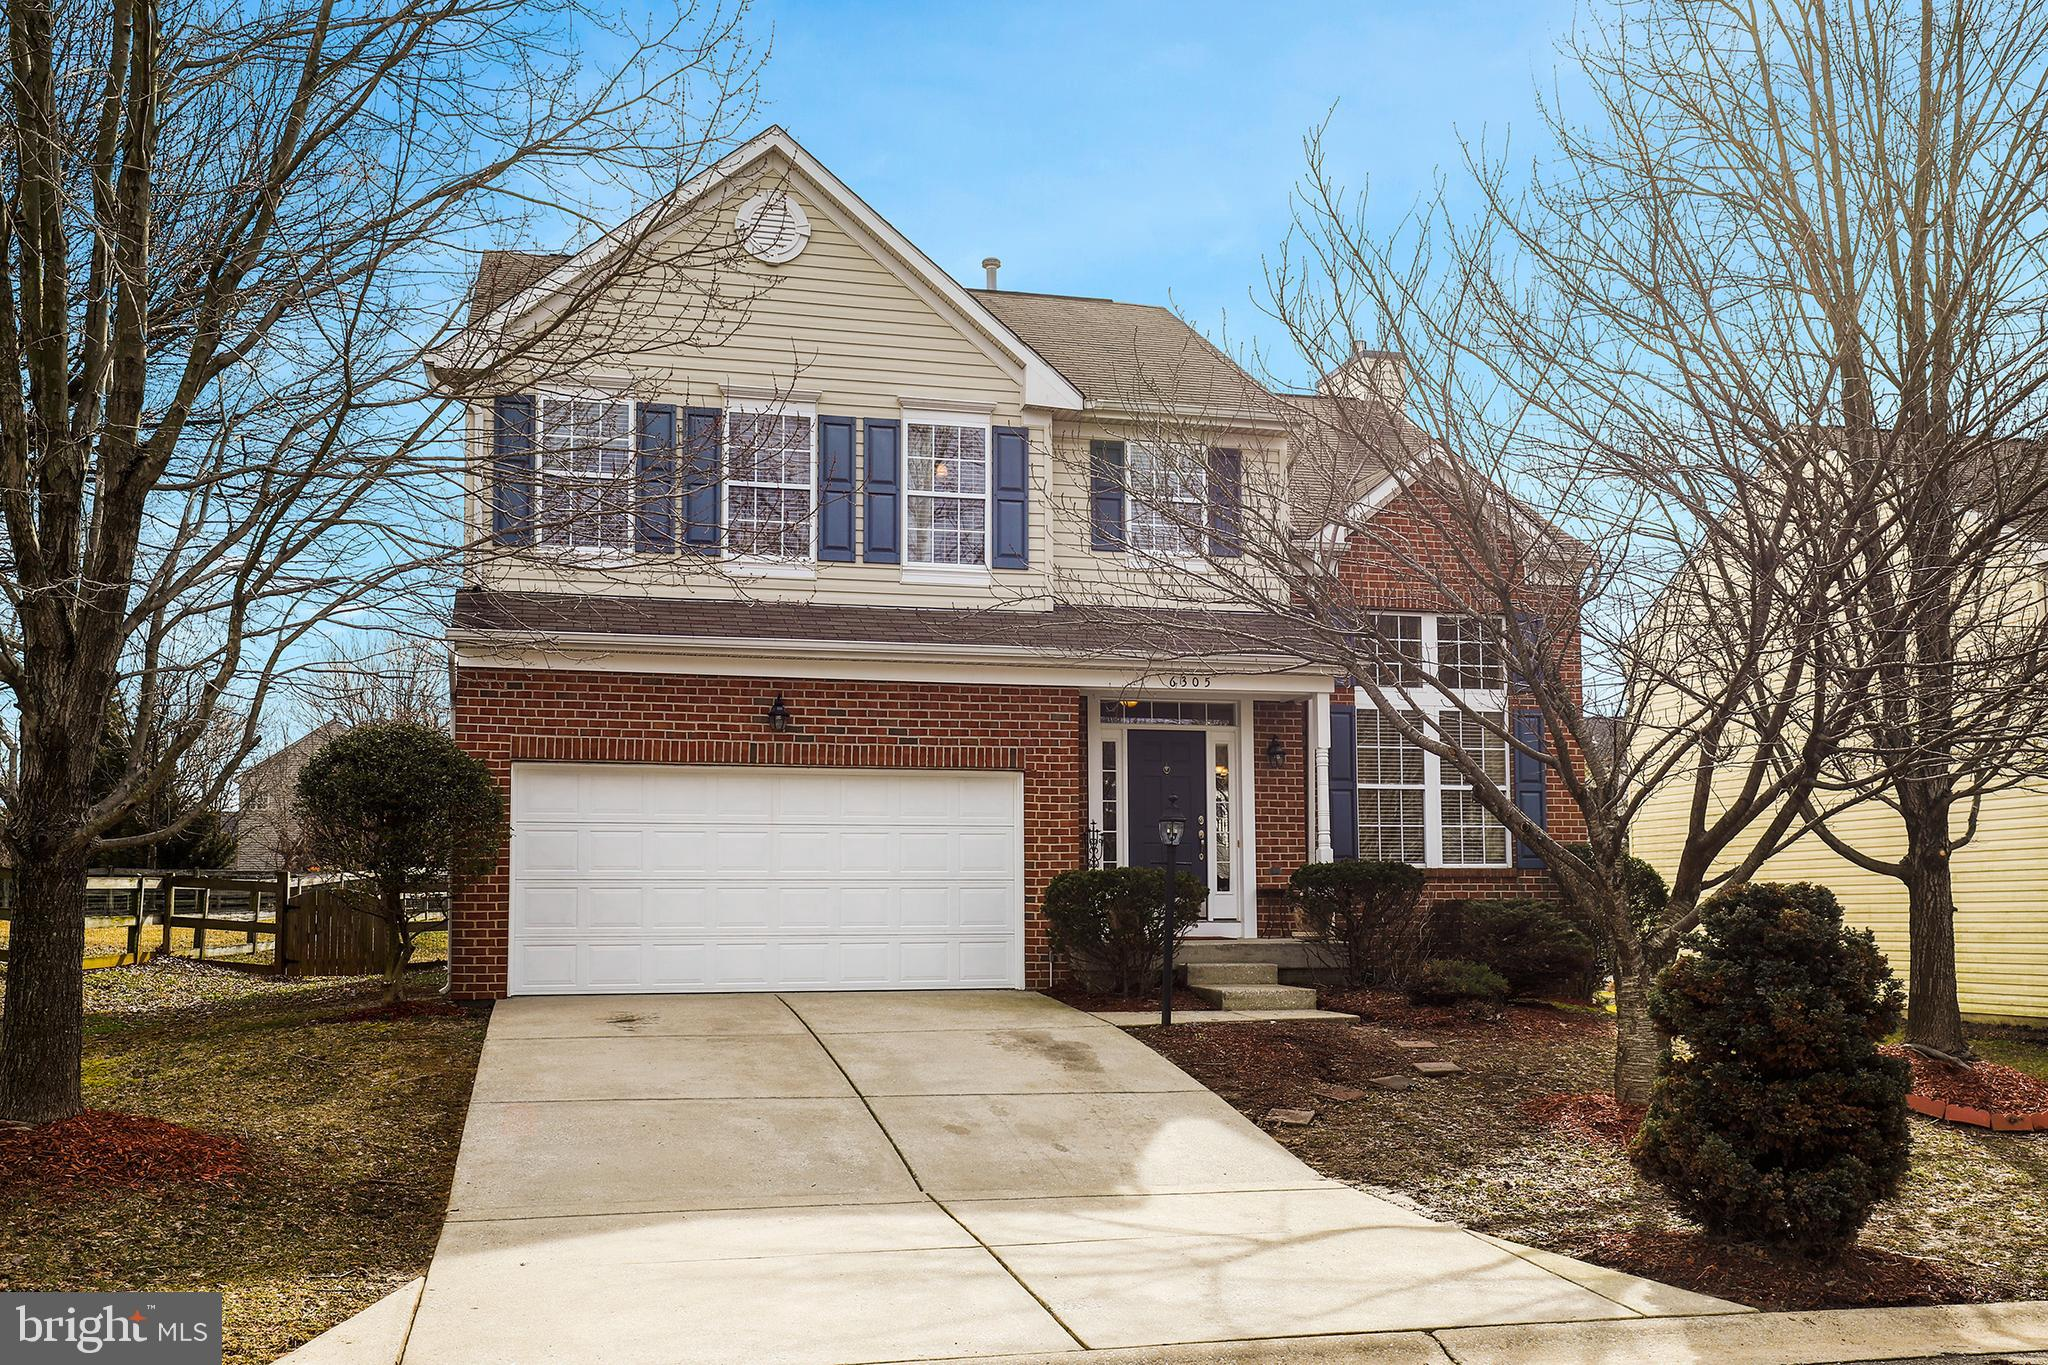 6305 BURNT MOUNTAIN PATH, COLUMBIA, MD 21045